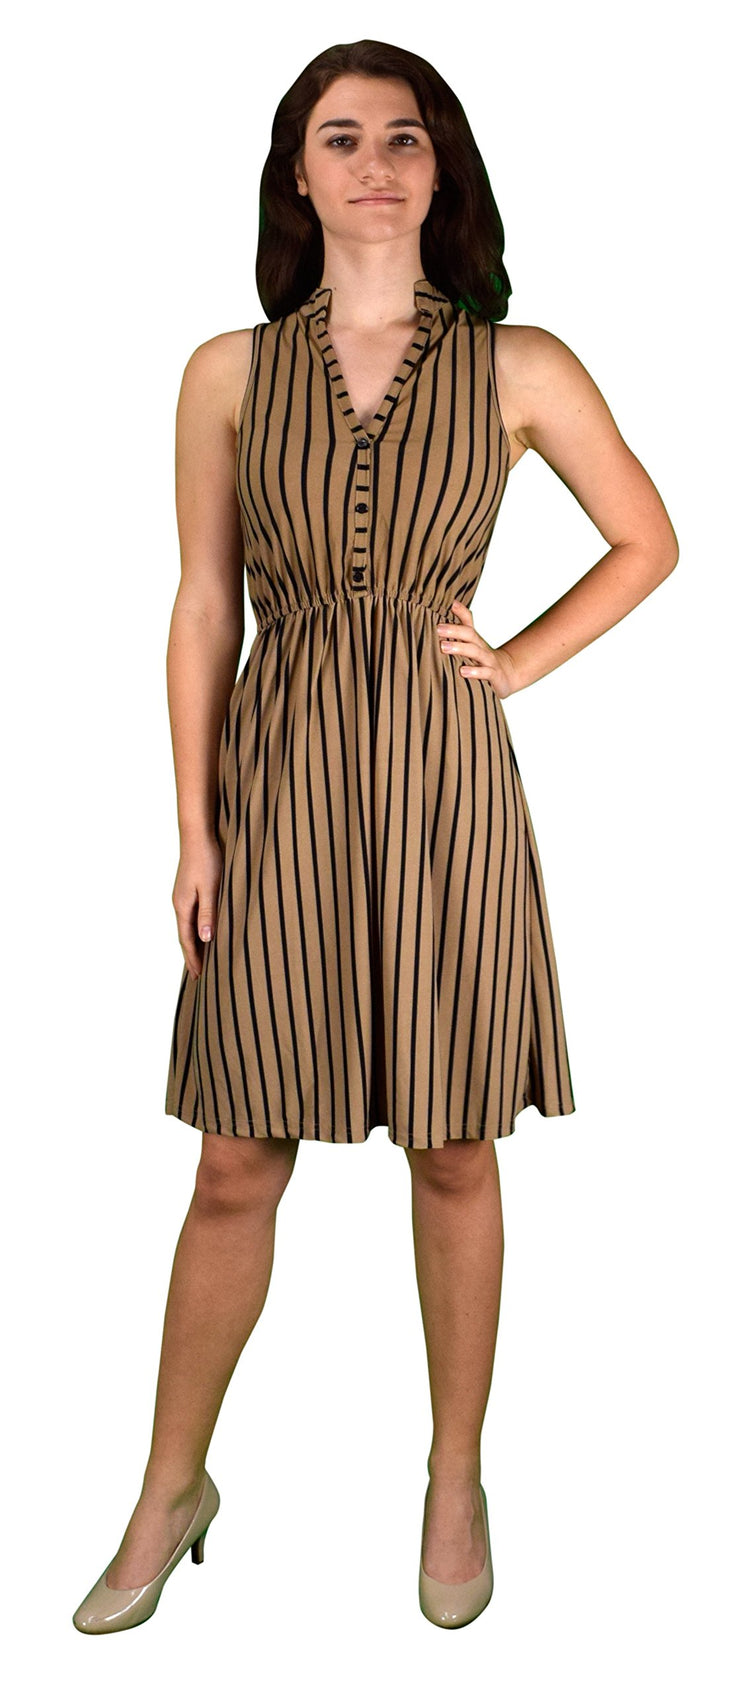 Peach Couture Womens Vintage Pinstripe Button Up Elastic Waist Shift Dress